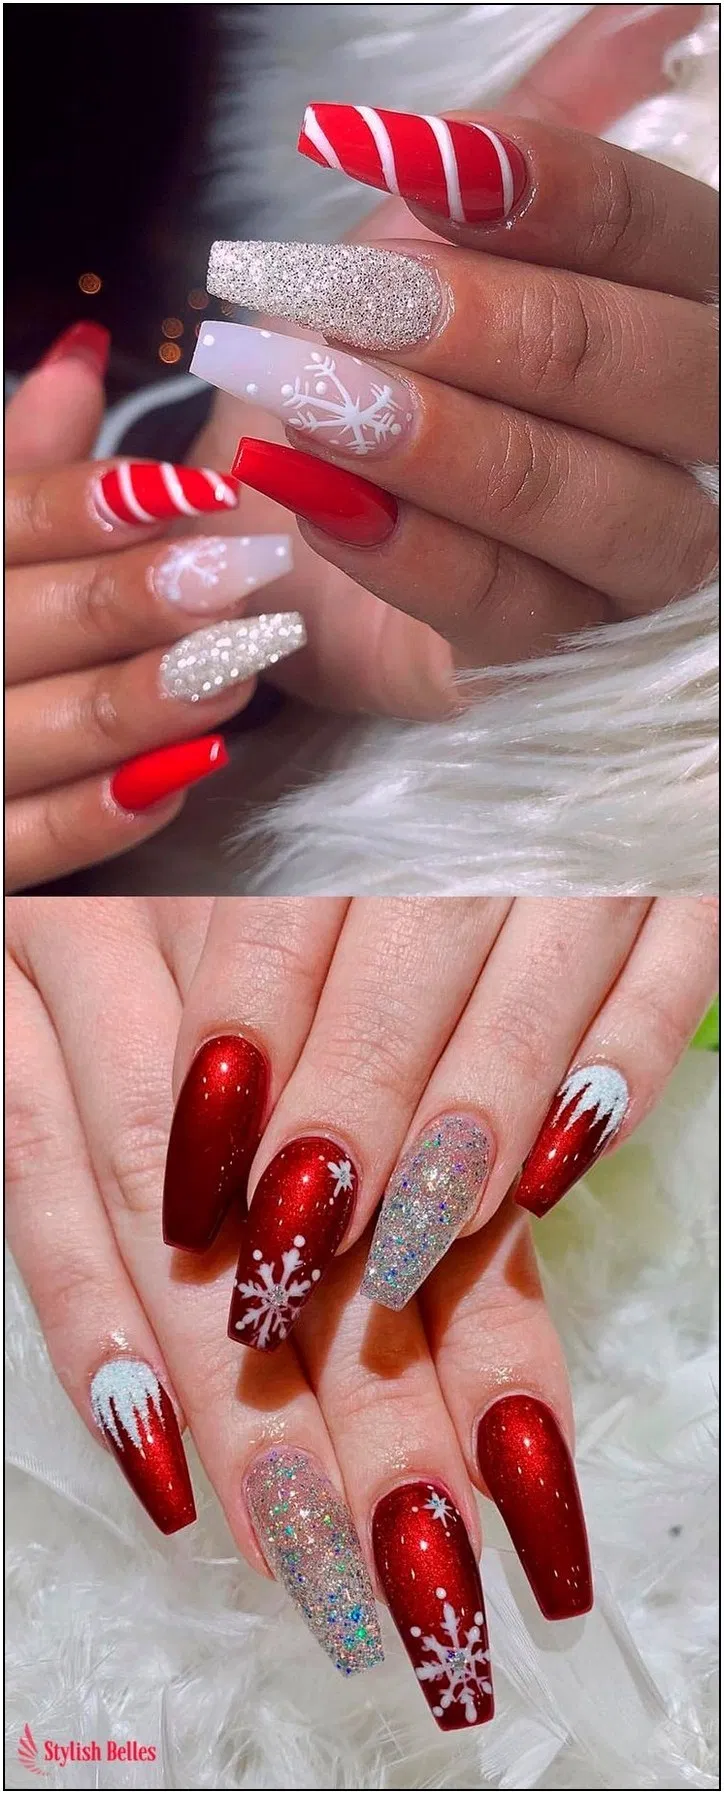 112 holiday nail designs that are festive af page 19 | Armaweb07.com #holidaynails